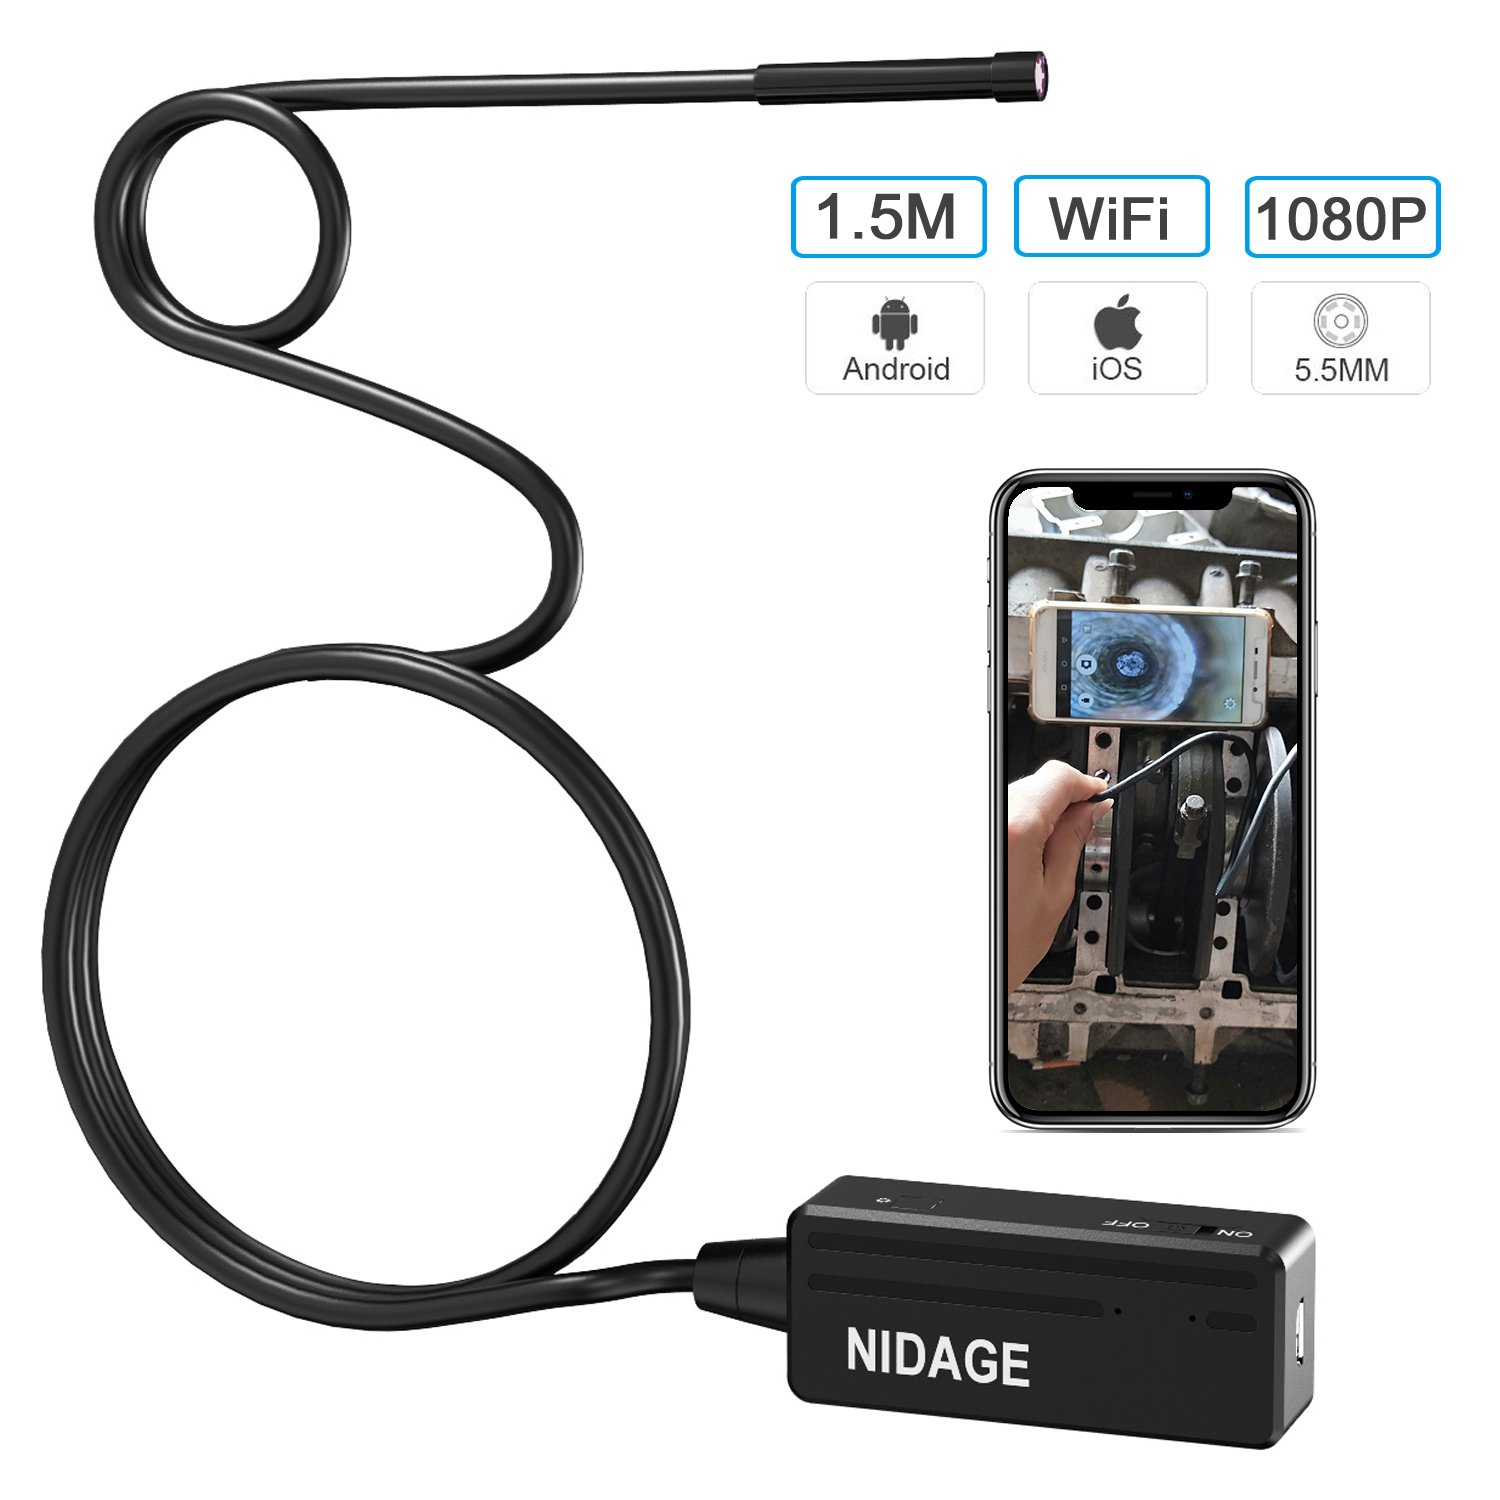 NIDAGE Wireless Endoscope for Automotive Inspection Semi-rigid Flexible Waterproof 5.5MM WiFi Borescope Camera for Android and iOS Smartphones, iPhone, iPad (1.5M/4.92ft)